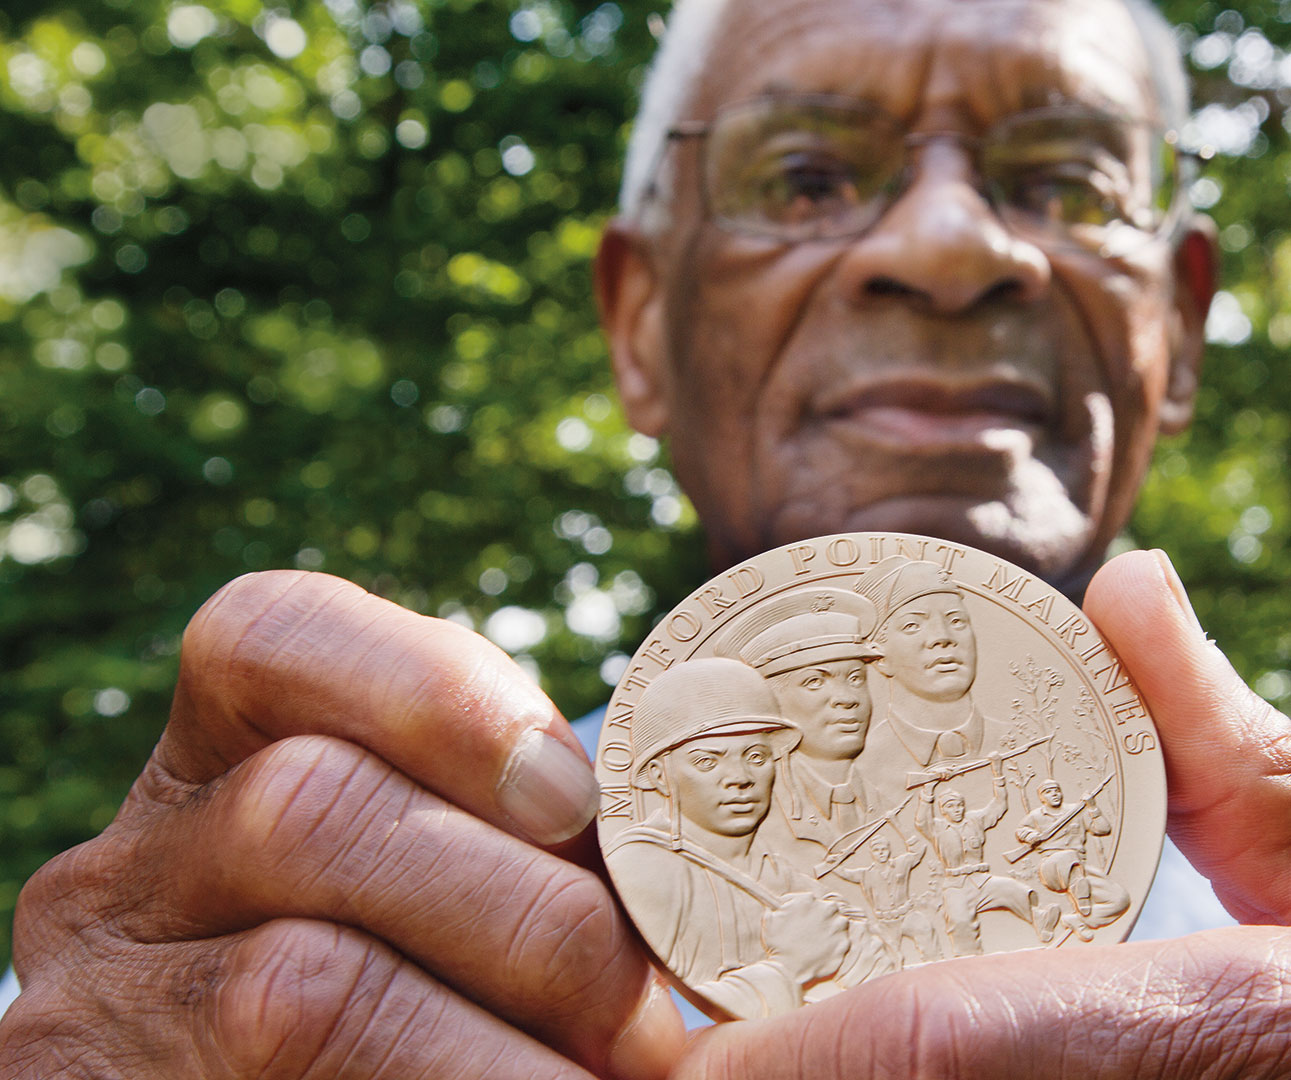 Shown at his Manchester Center, Vt., home in September 2012, Nathaniel Boone '52 displays the Congressional Gold Medal he received for his service as a Montford Point Marine.  Photograph by Phyllis Graber Jensen